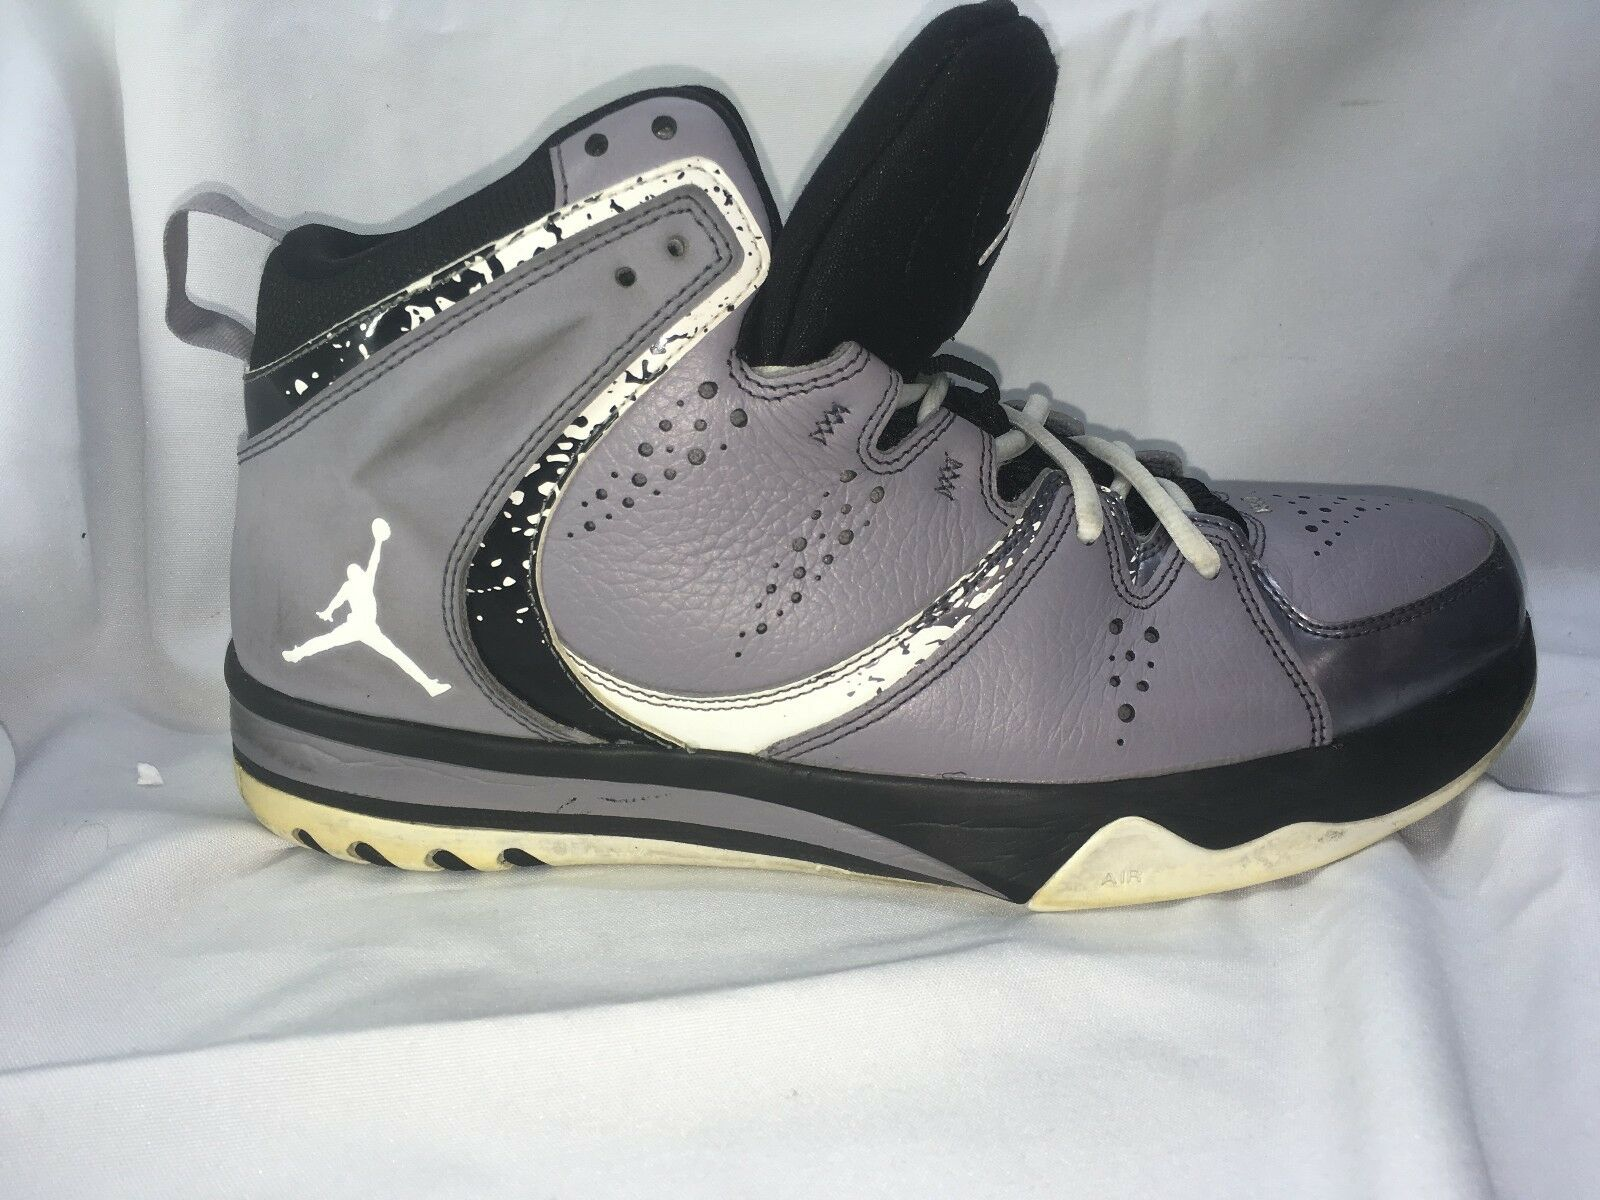 d0362749e9285f ... Mens Jordan Phase 23 Trek Basketball Basketball Basketball Shoes  602671-003 Size US 10 026a44 ...